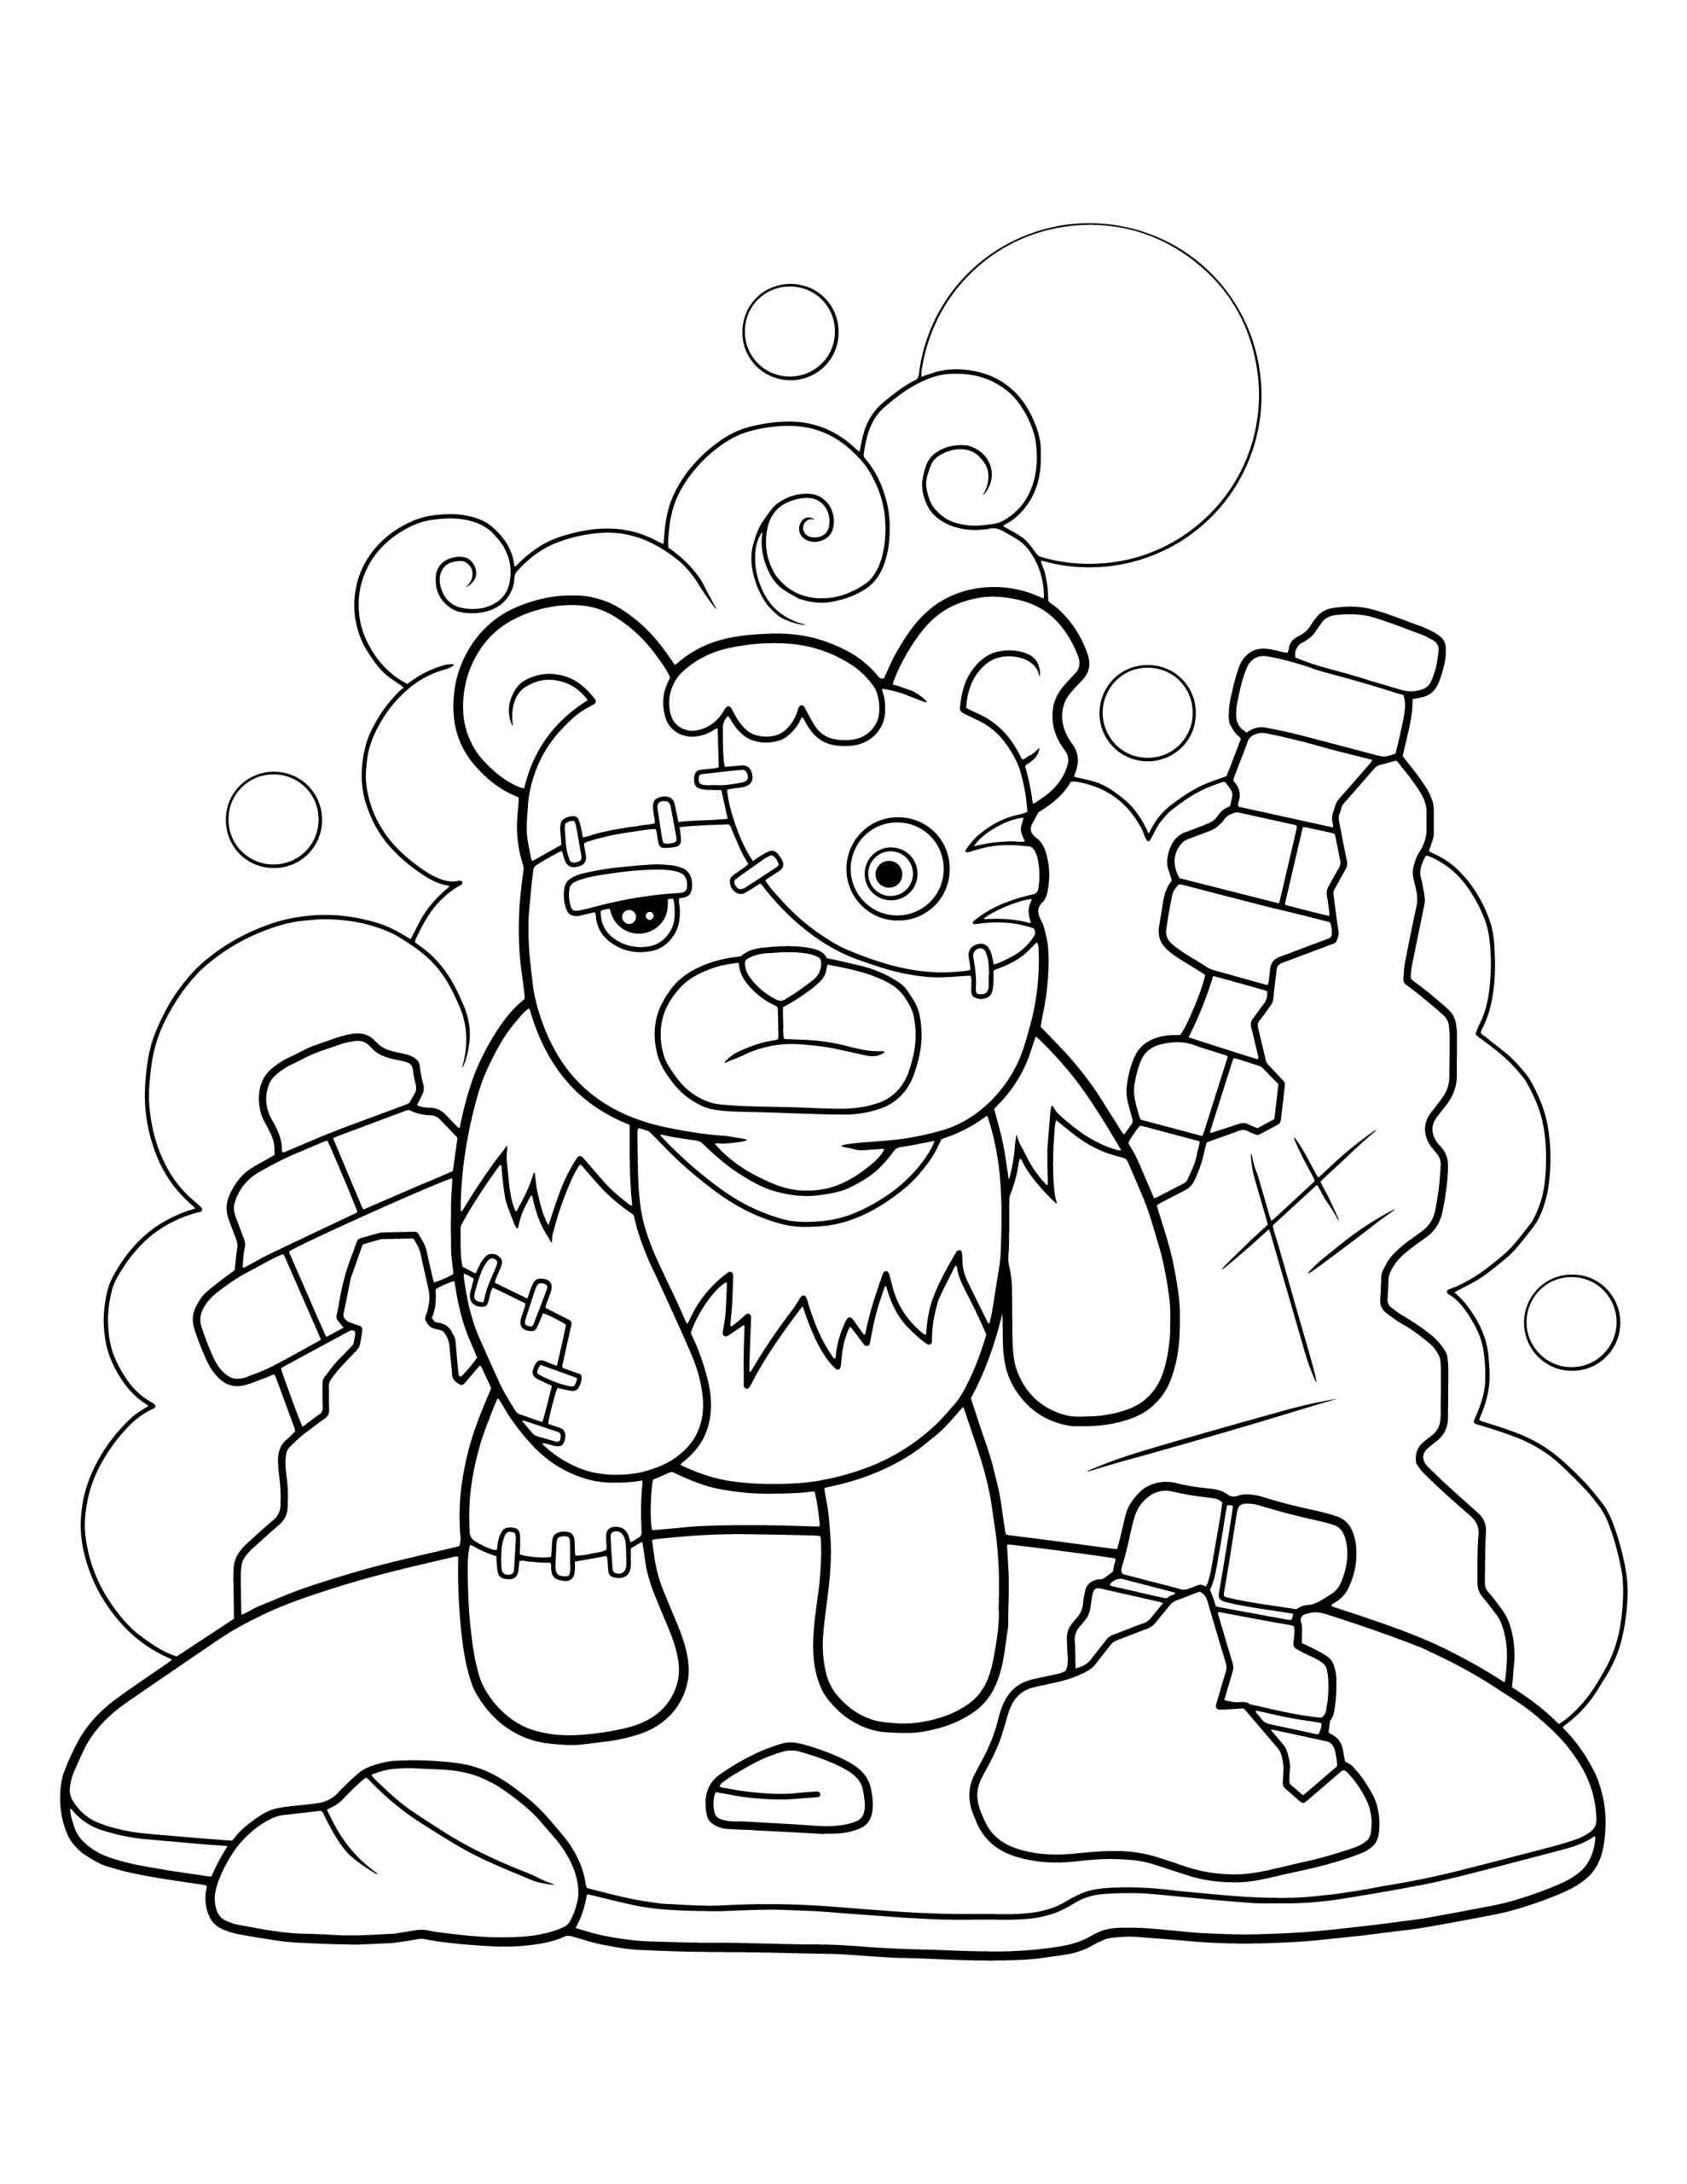 Frankenstein bear coloring page